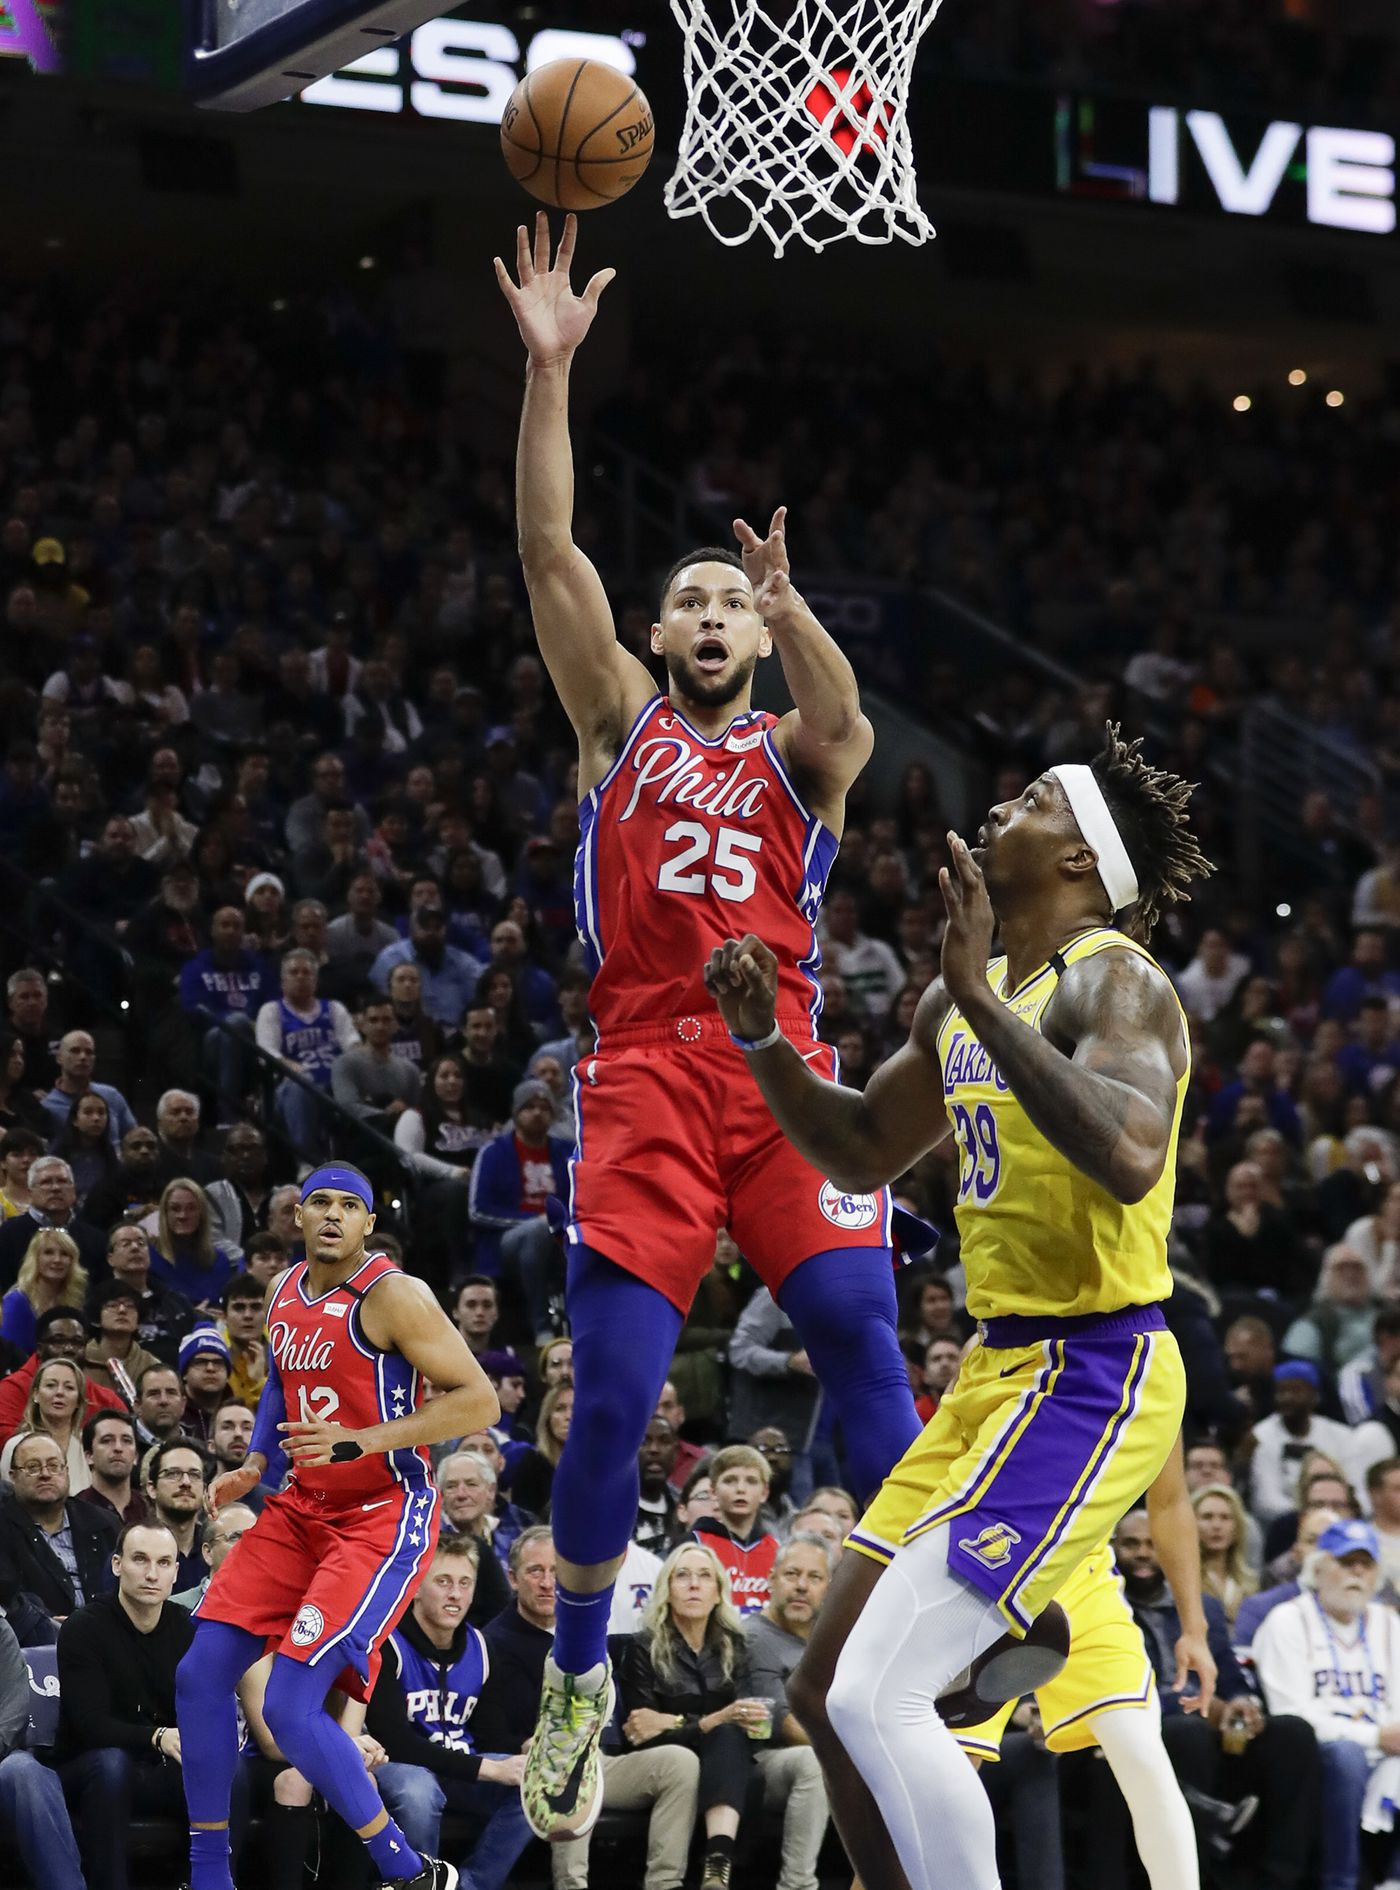 Sixers guard Ben Simmons lays-up the basketball past Los Angeles Lakers center Dwight Howard during the first-quarter on Saturday, January 25, 2020 in Philadelphia.